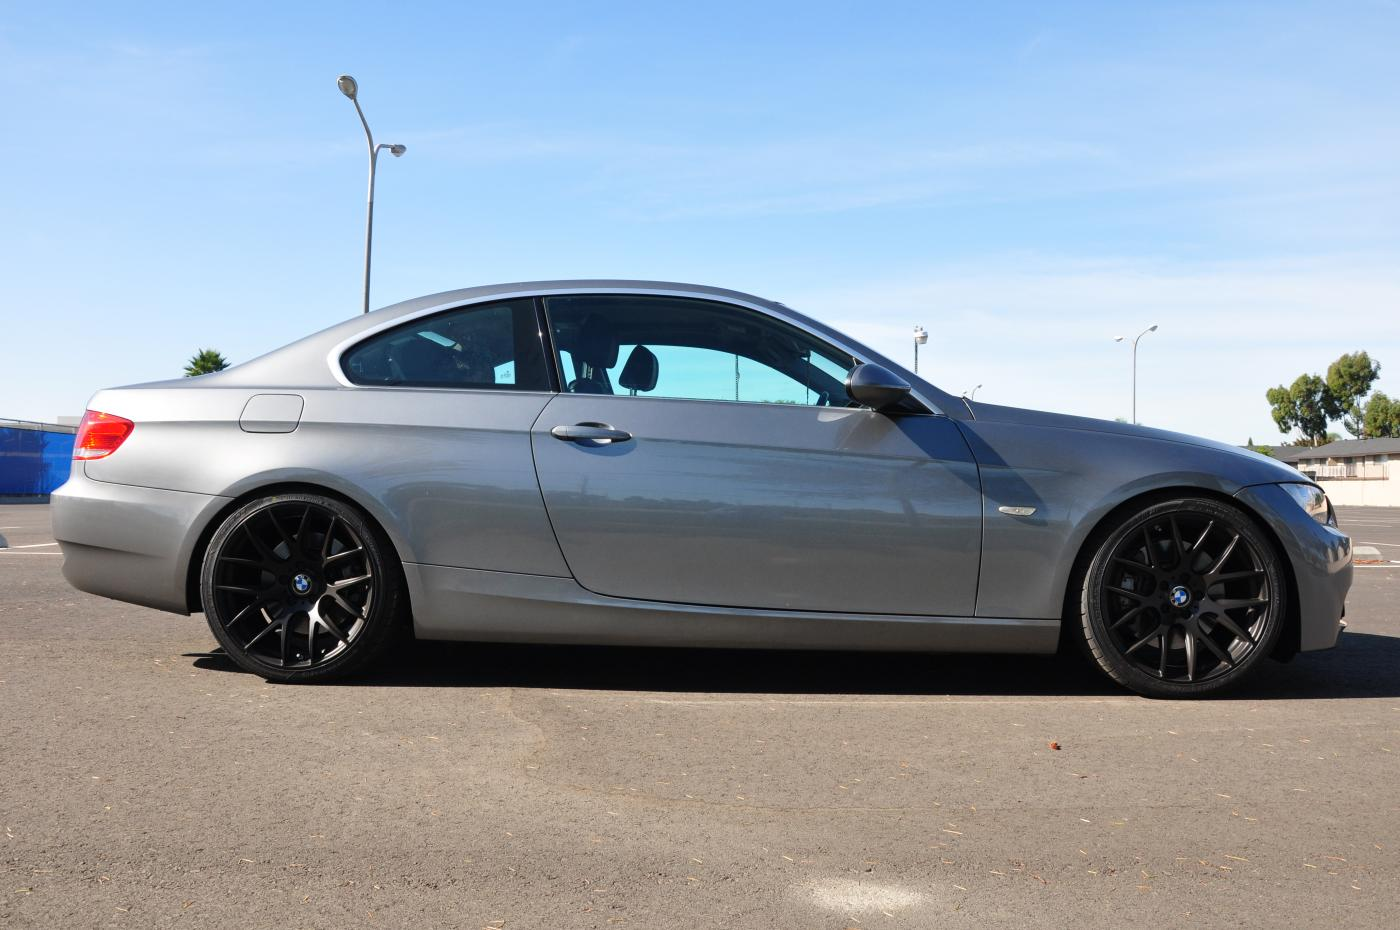 Bmw Buena Park >> FOR SALE:2007 BMW 335i COUPE(SOCAL)